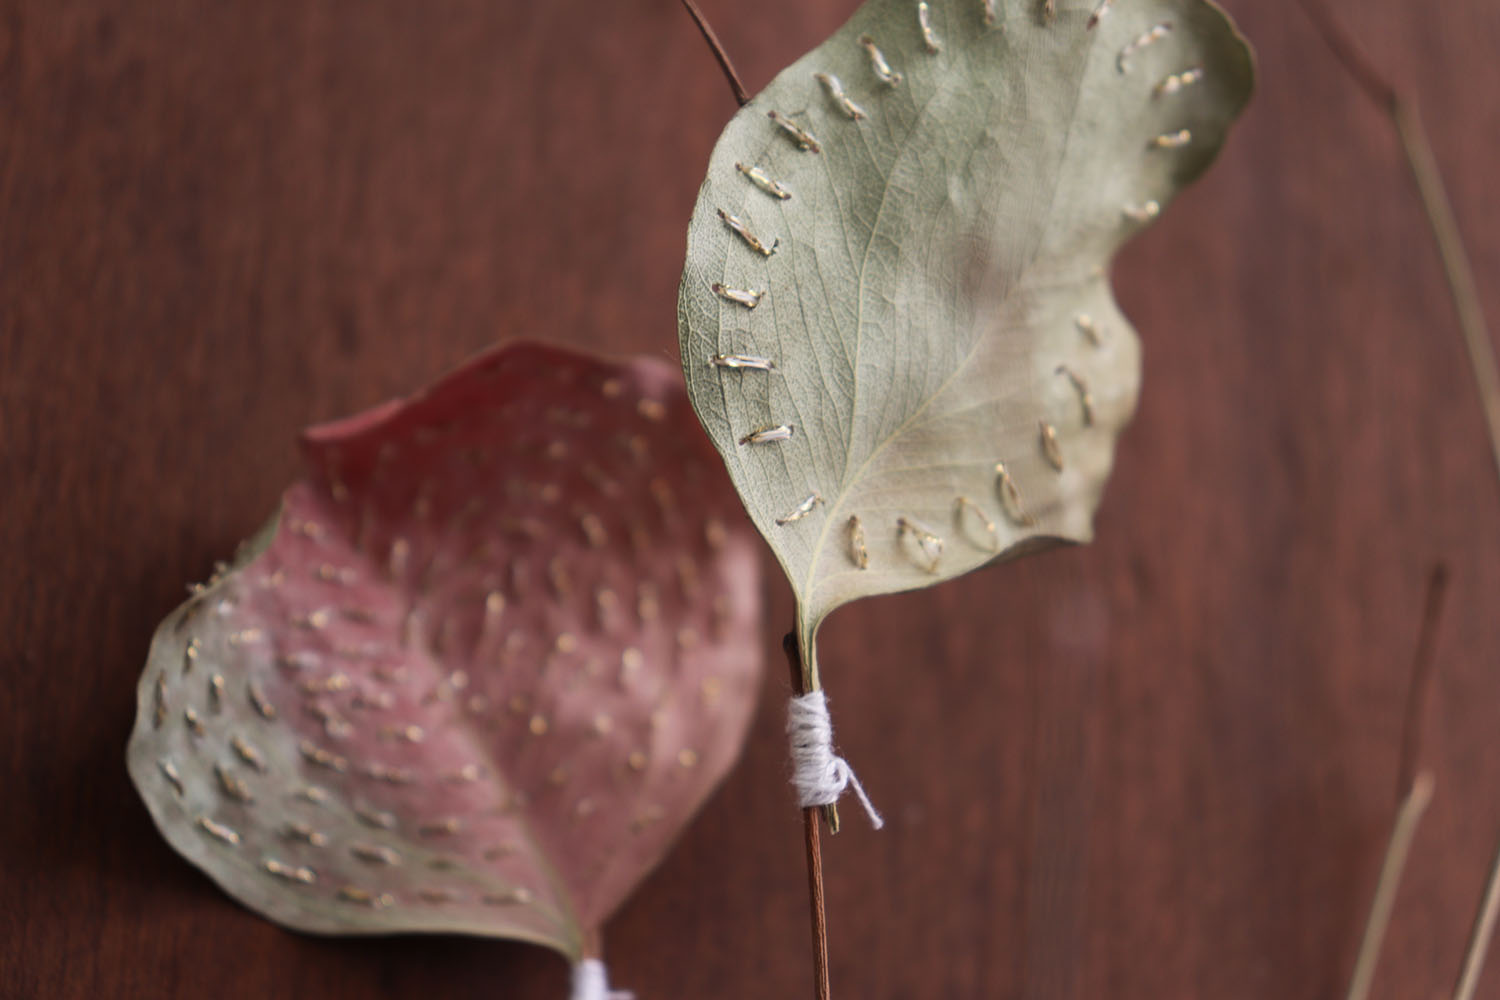 Needlework on dried leaves